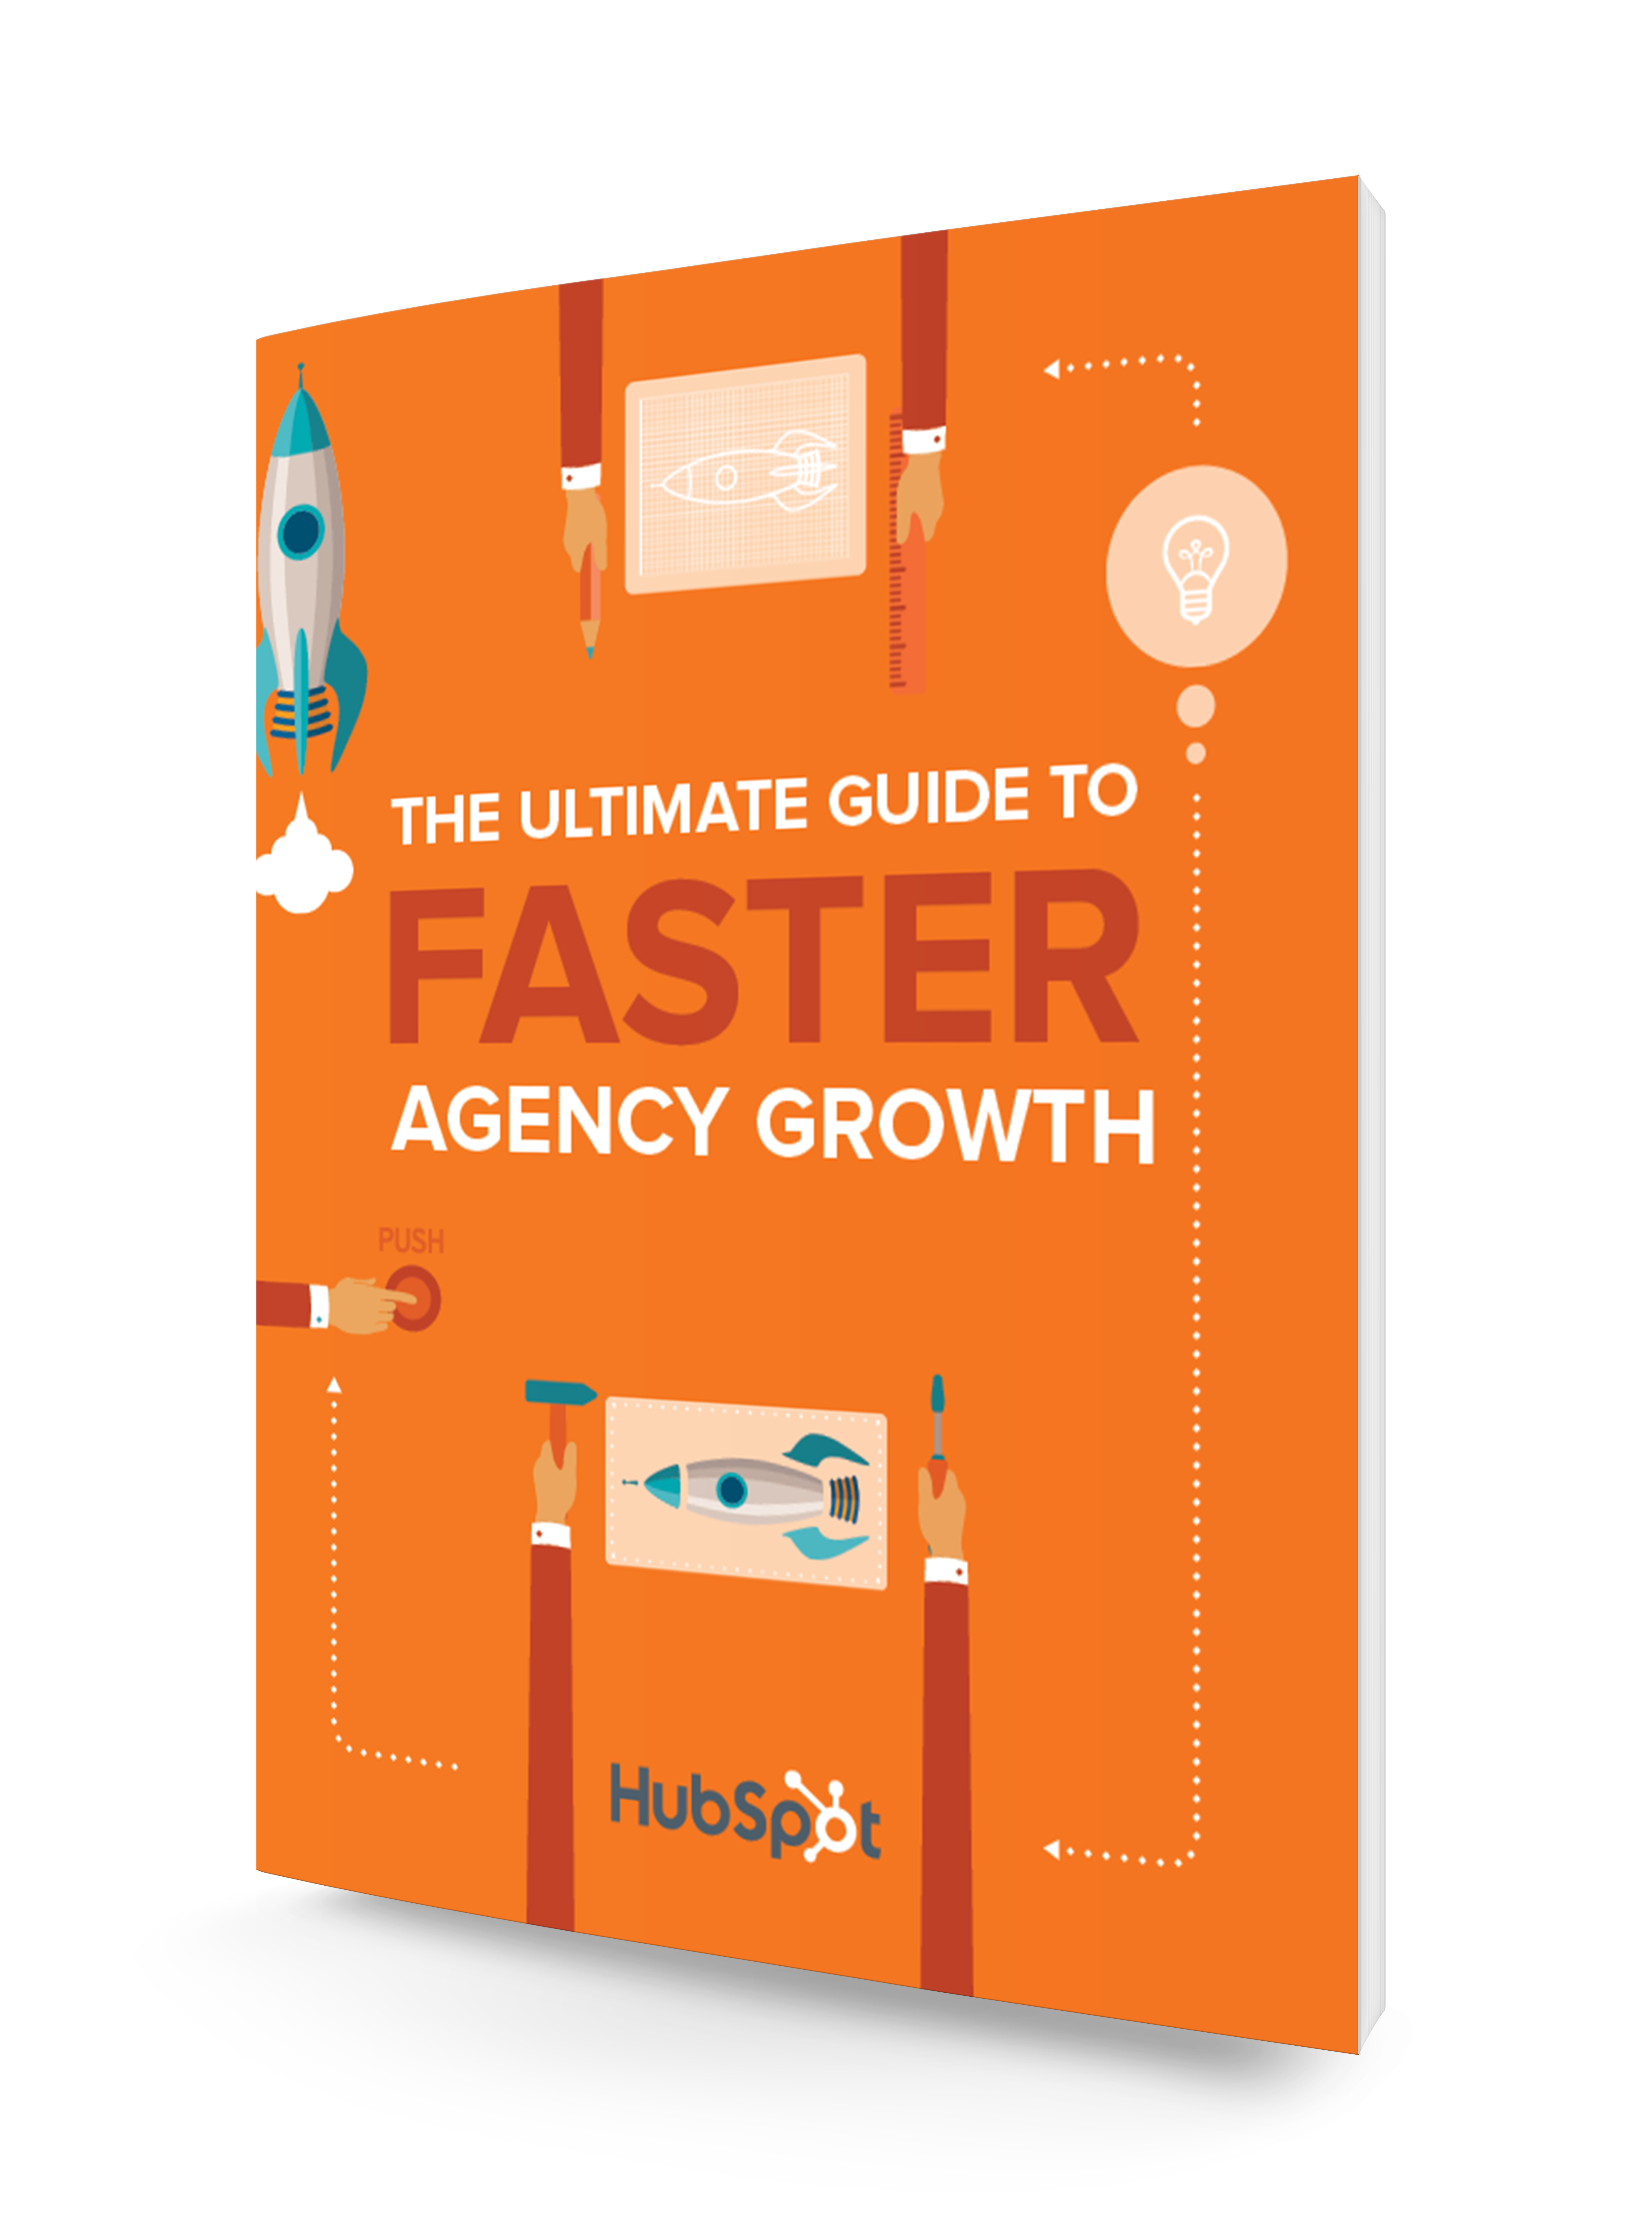 The Ultimate Guide to Faster Agency Growth